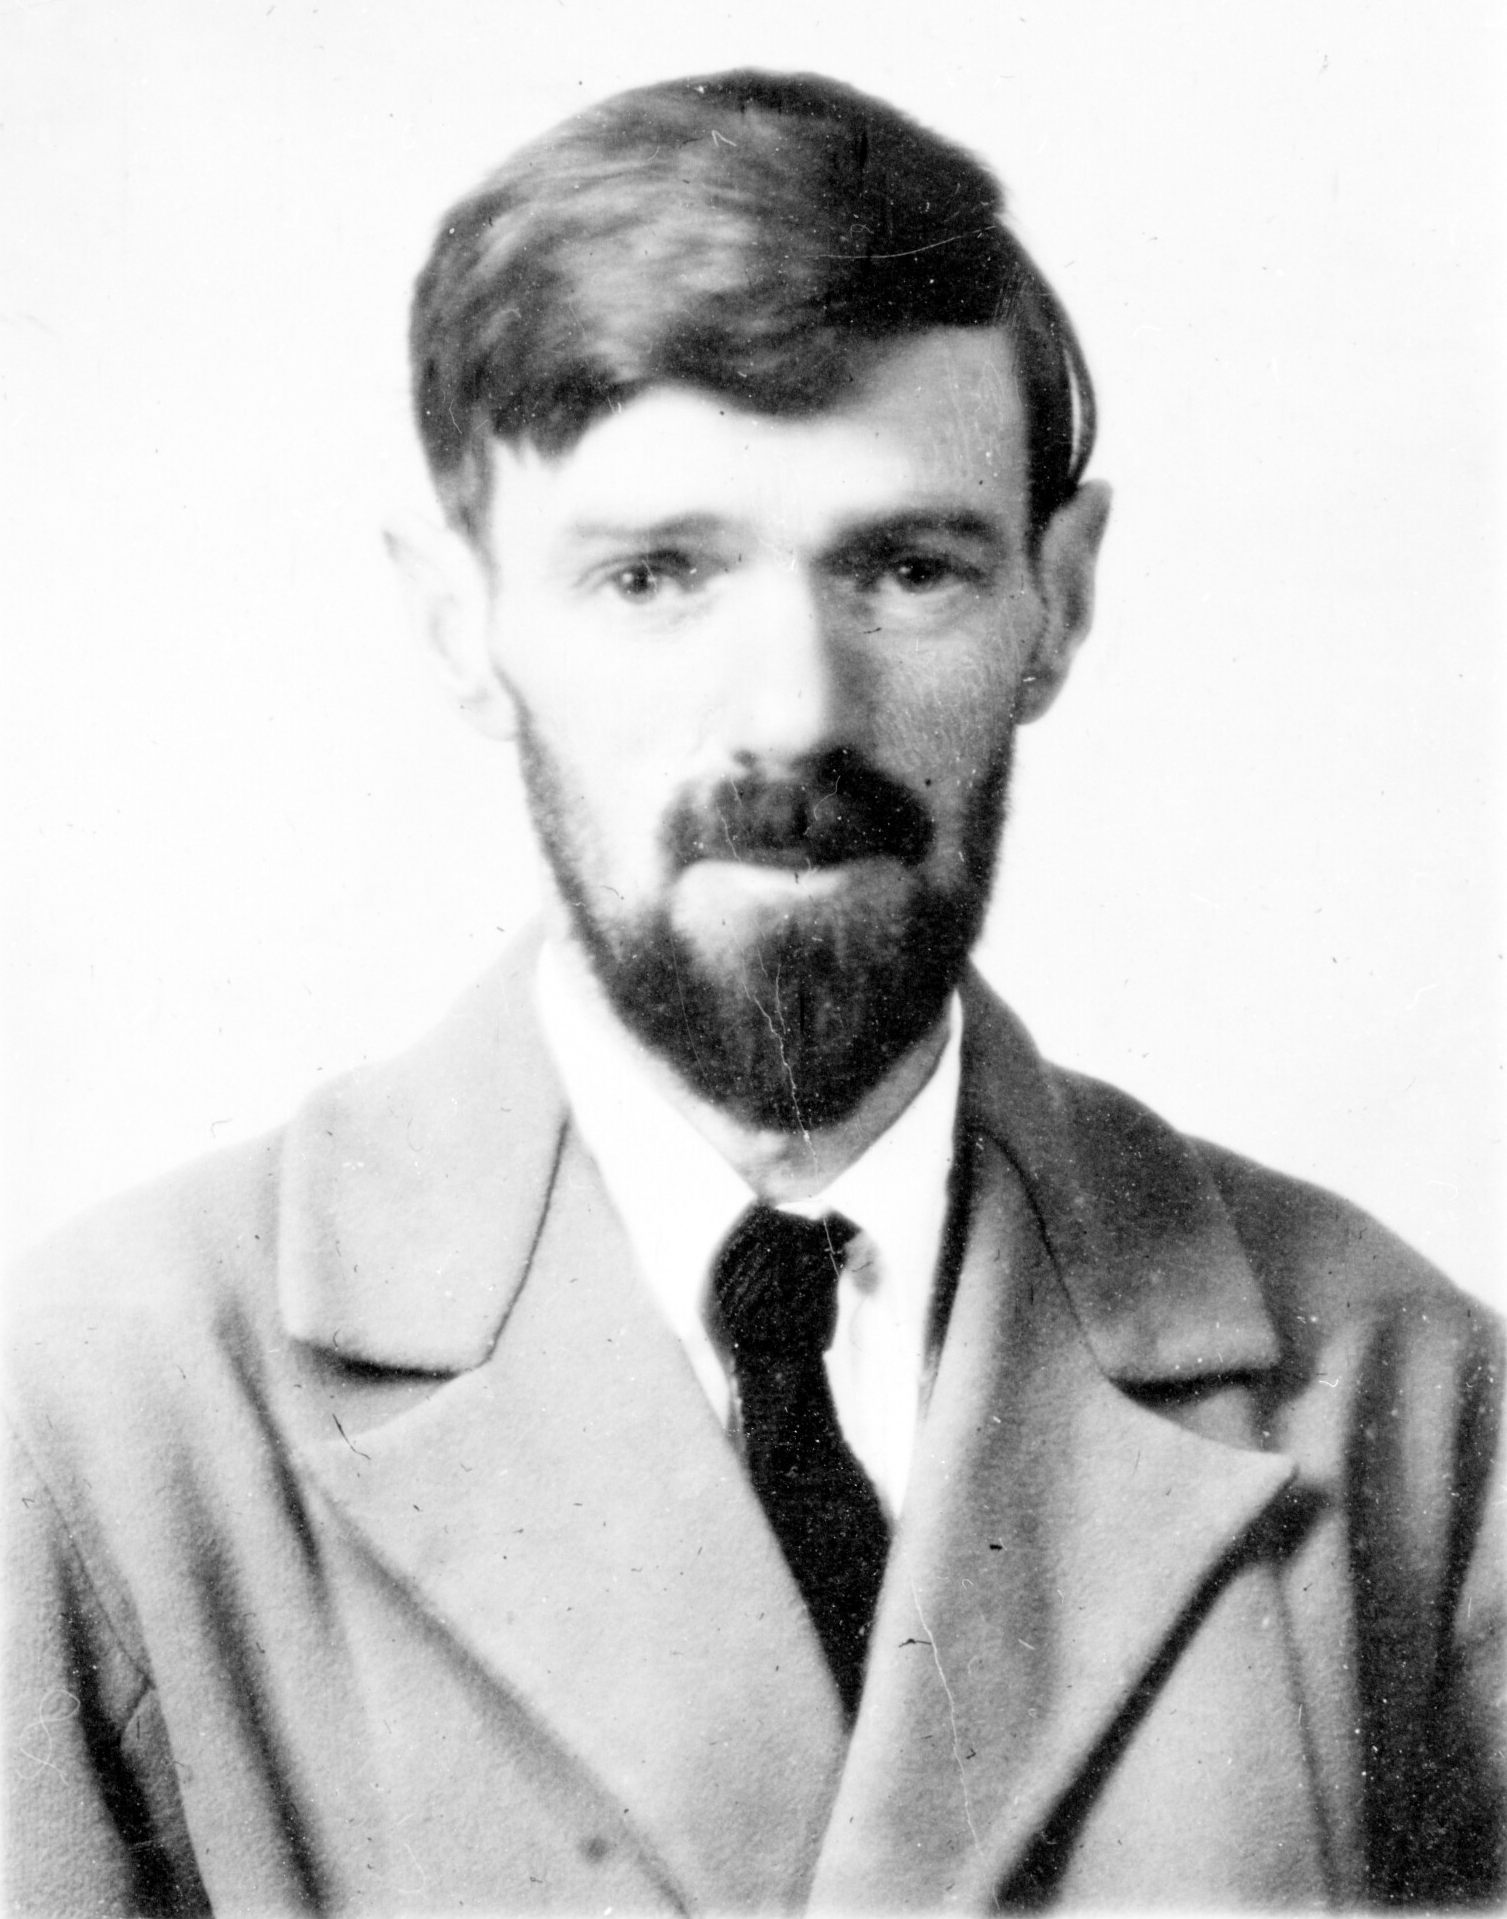 d h lawrence passport photograph jpg language features in essays